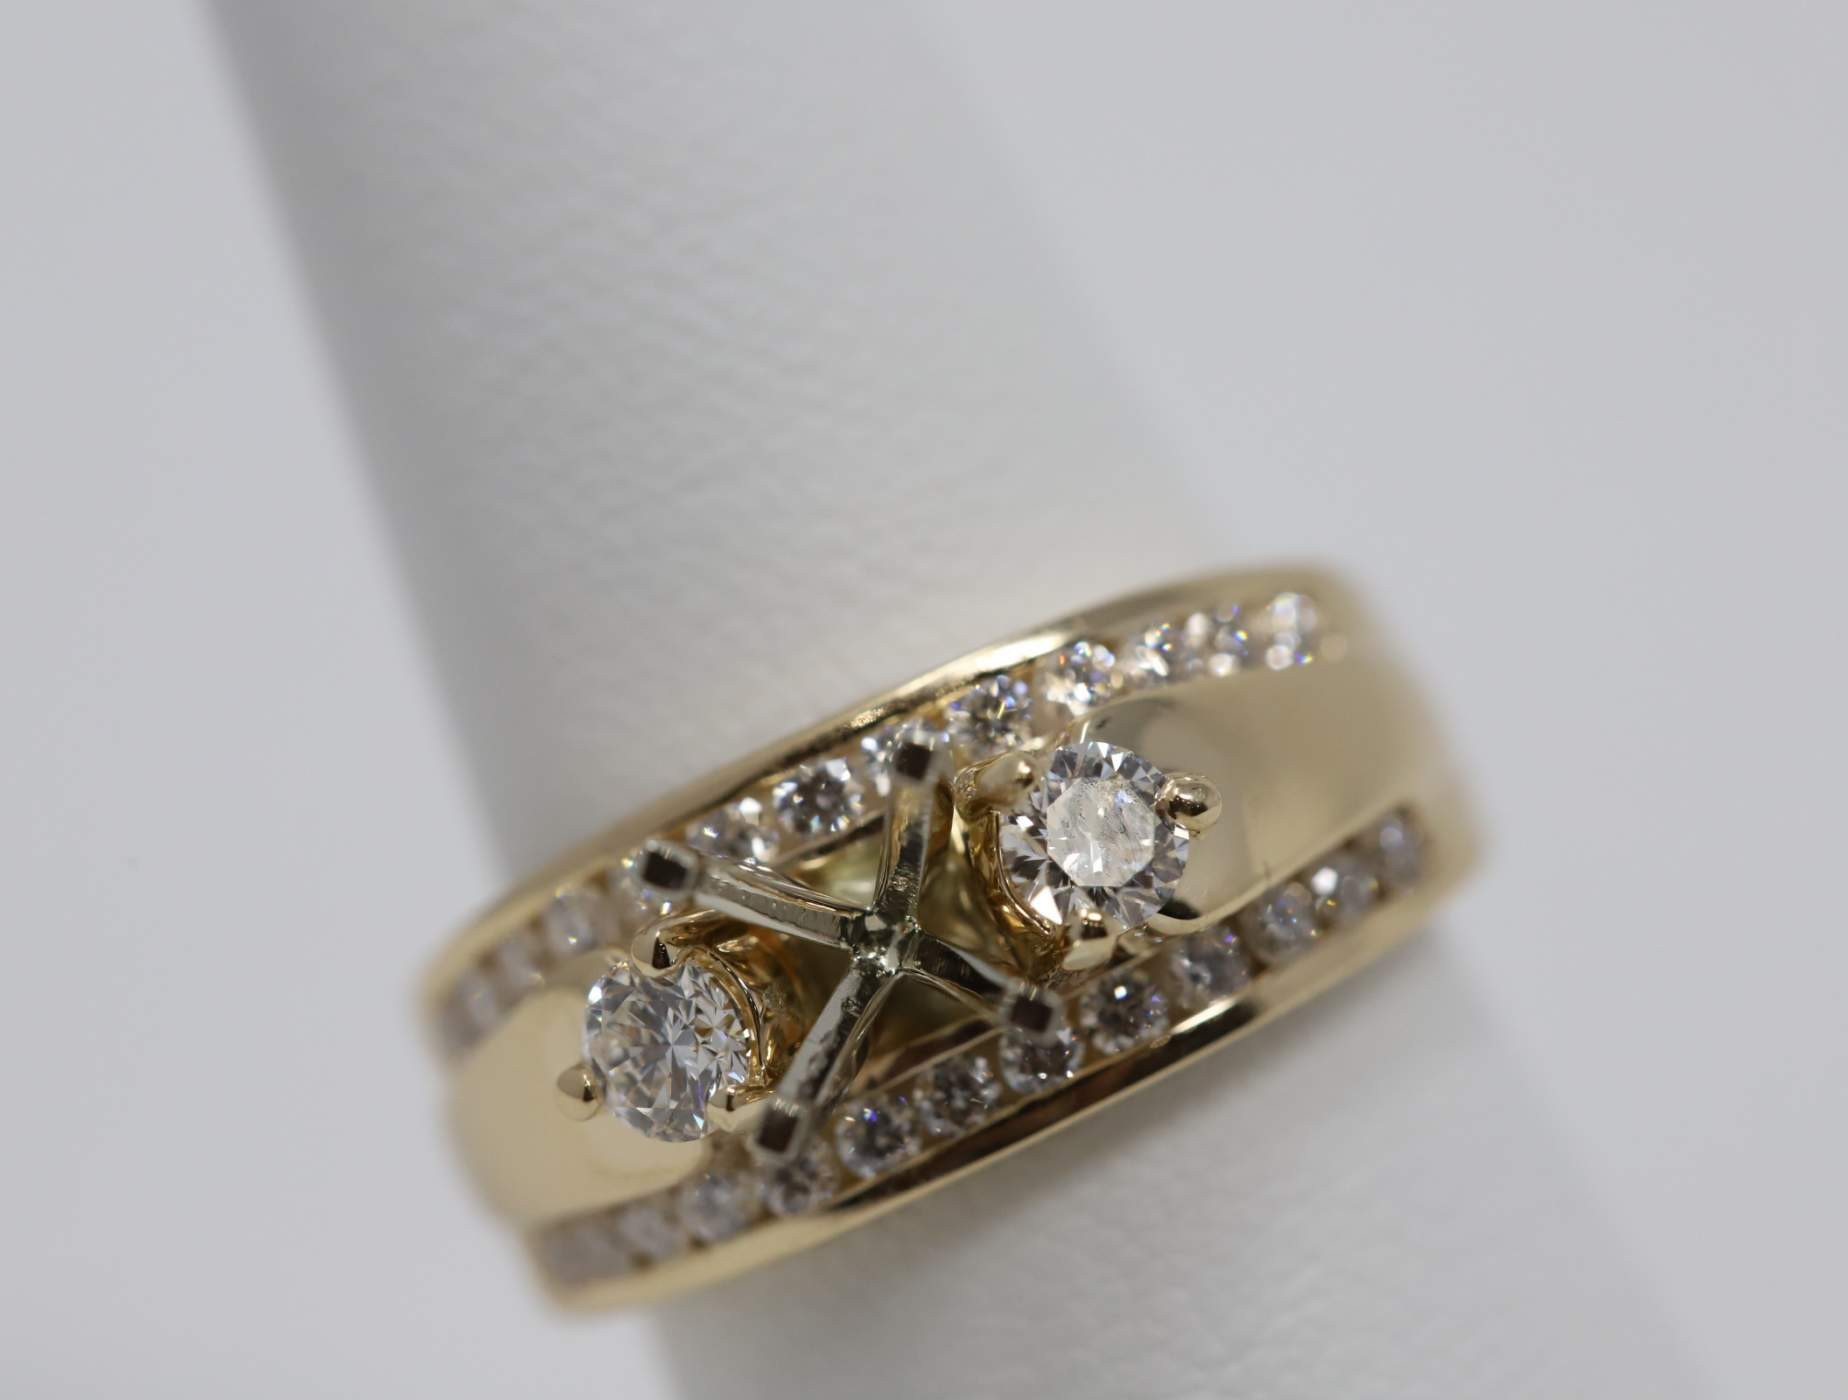 Ladies 14k Yellow Gold (no Major Stone Currently) Engagement Ring Mounting